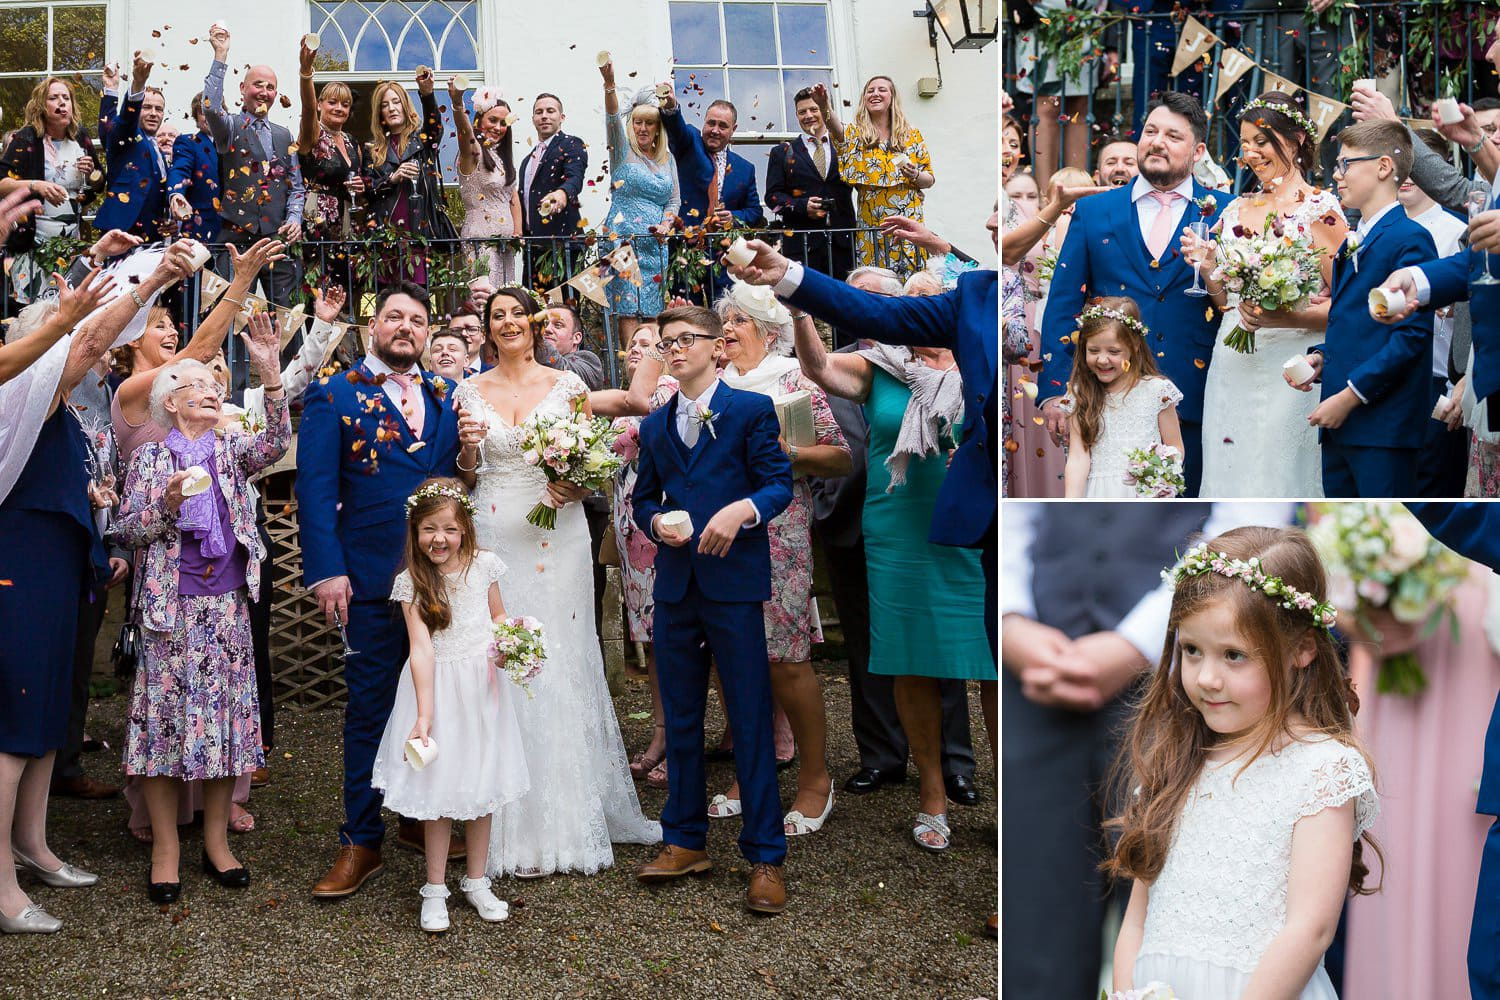 The Old Deanery Wedding, confetti